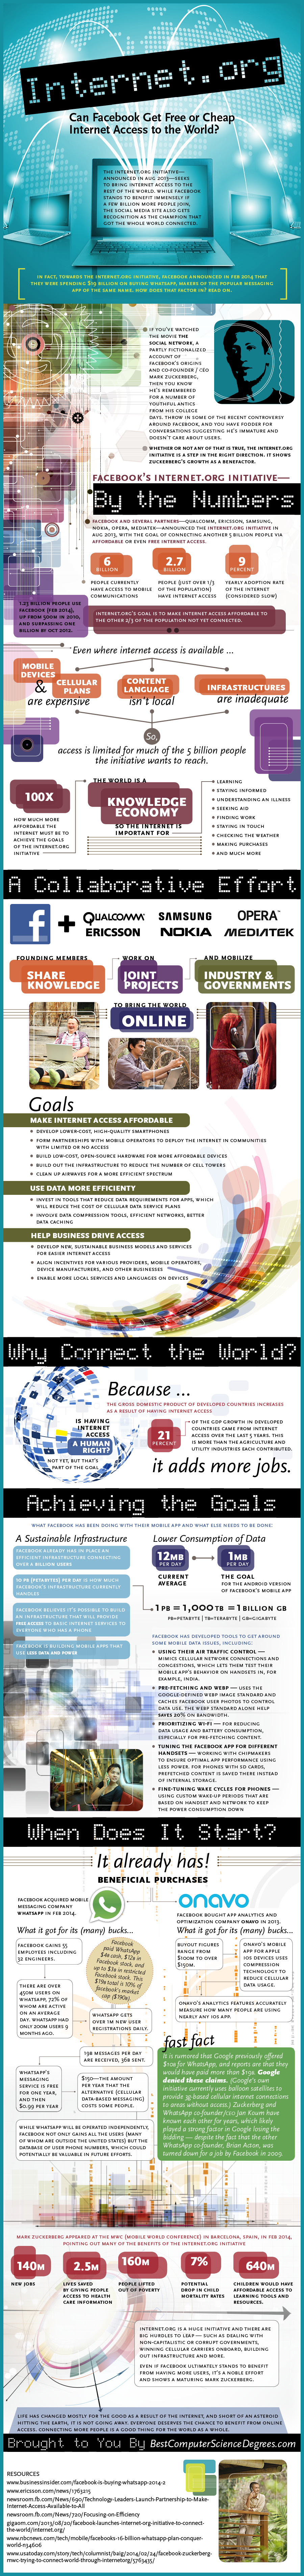 Can Facebook Get Free or cheap Internet Access to the World - infographic #socialmedia